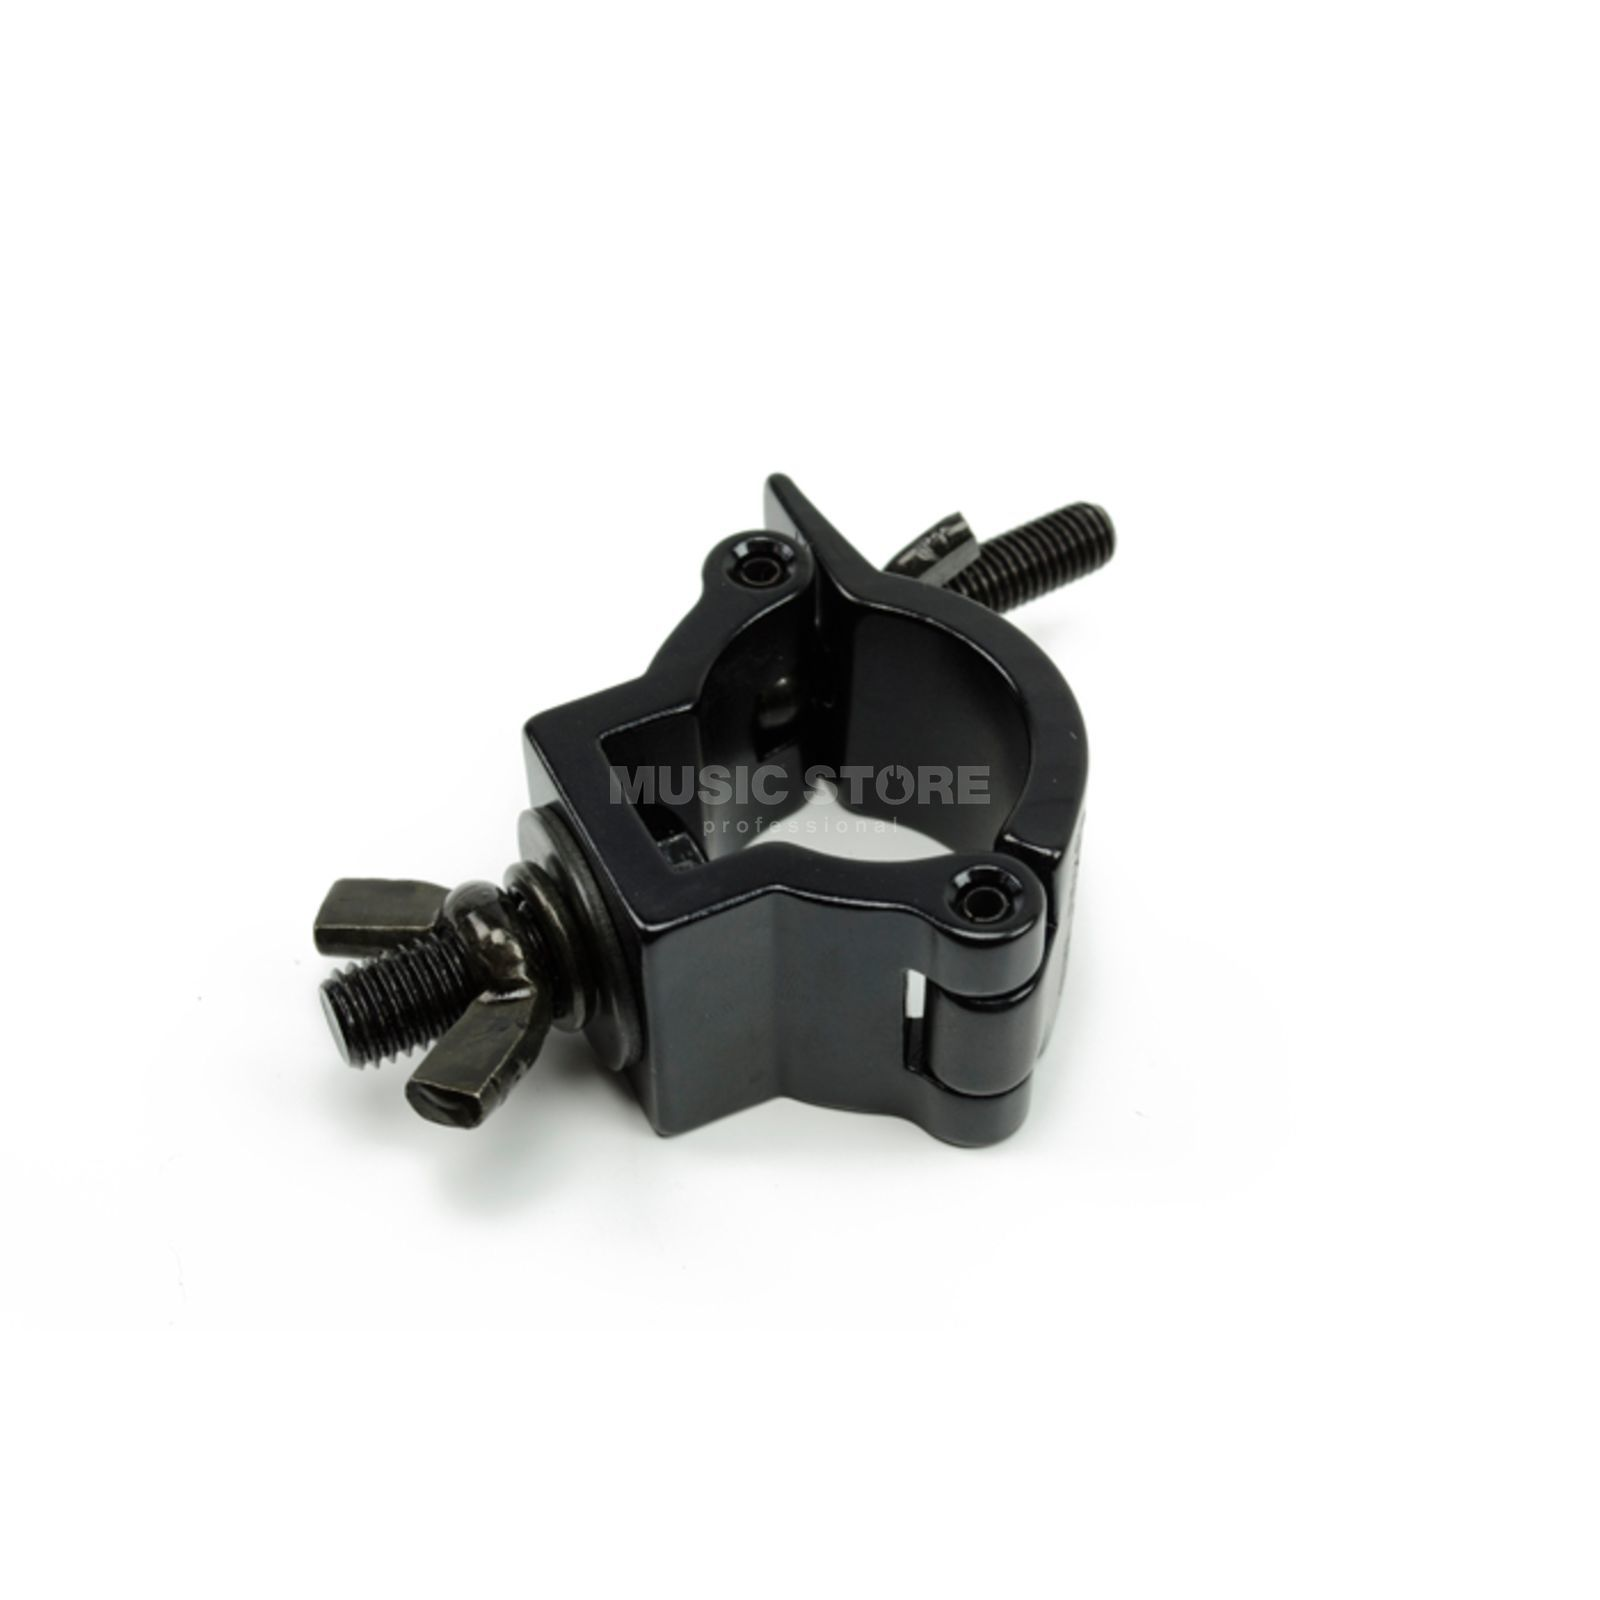 lightmaXX Half Coupler Black 32-35mm TÜV,75kg Produktbild